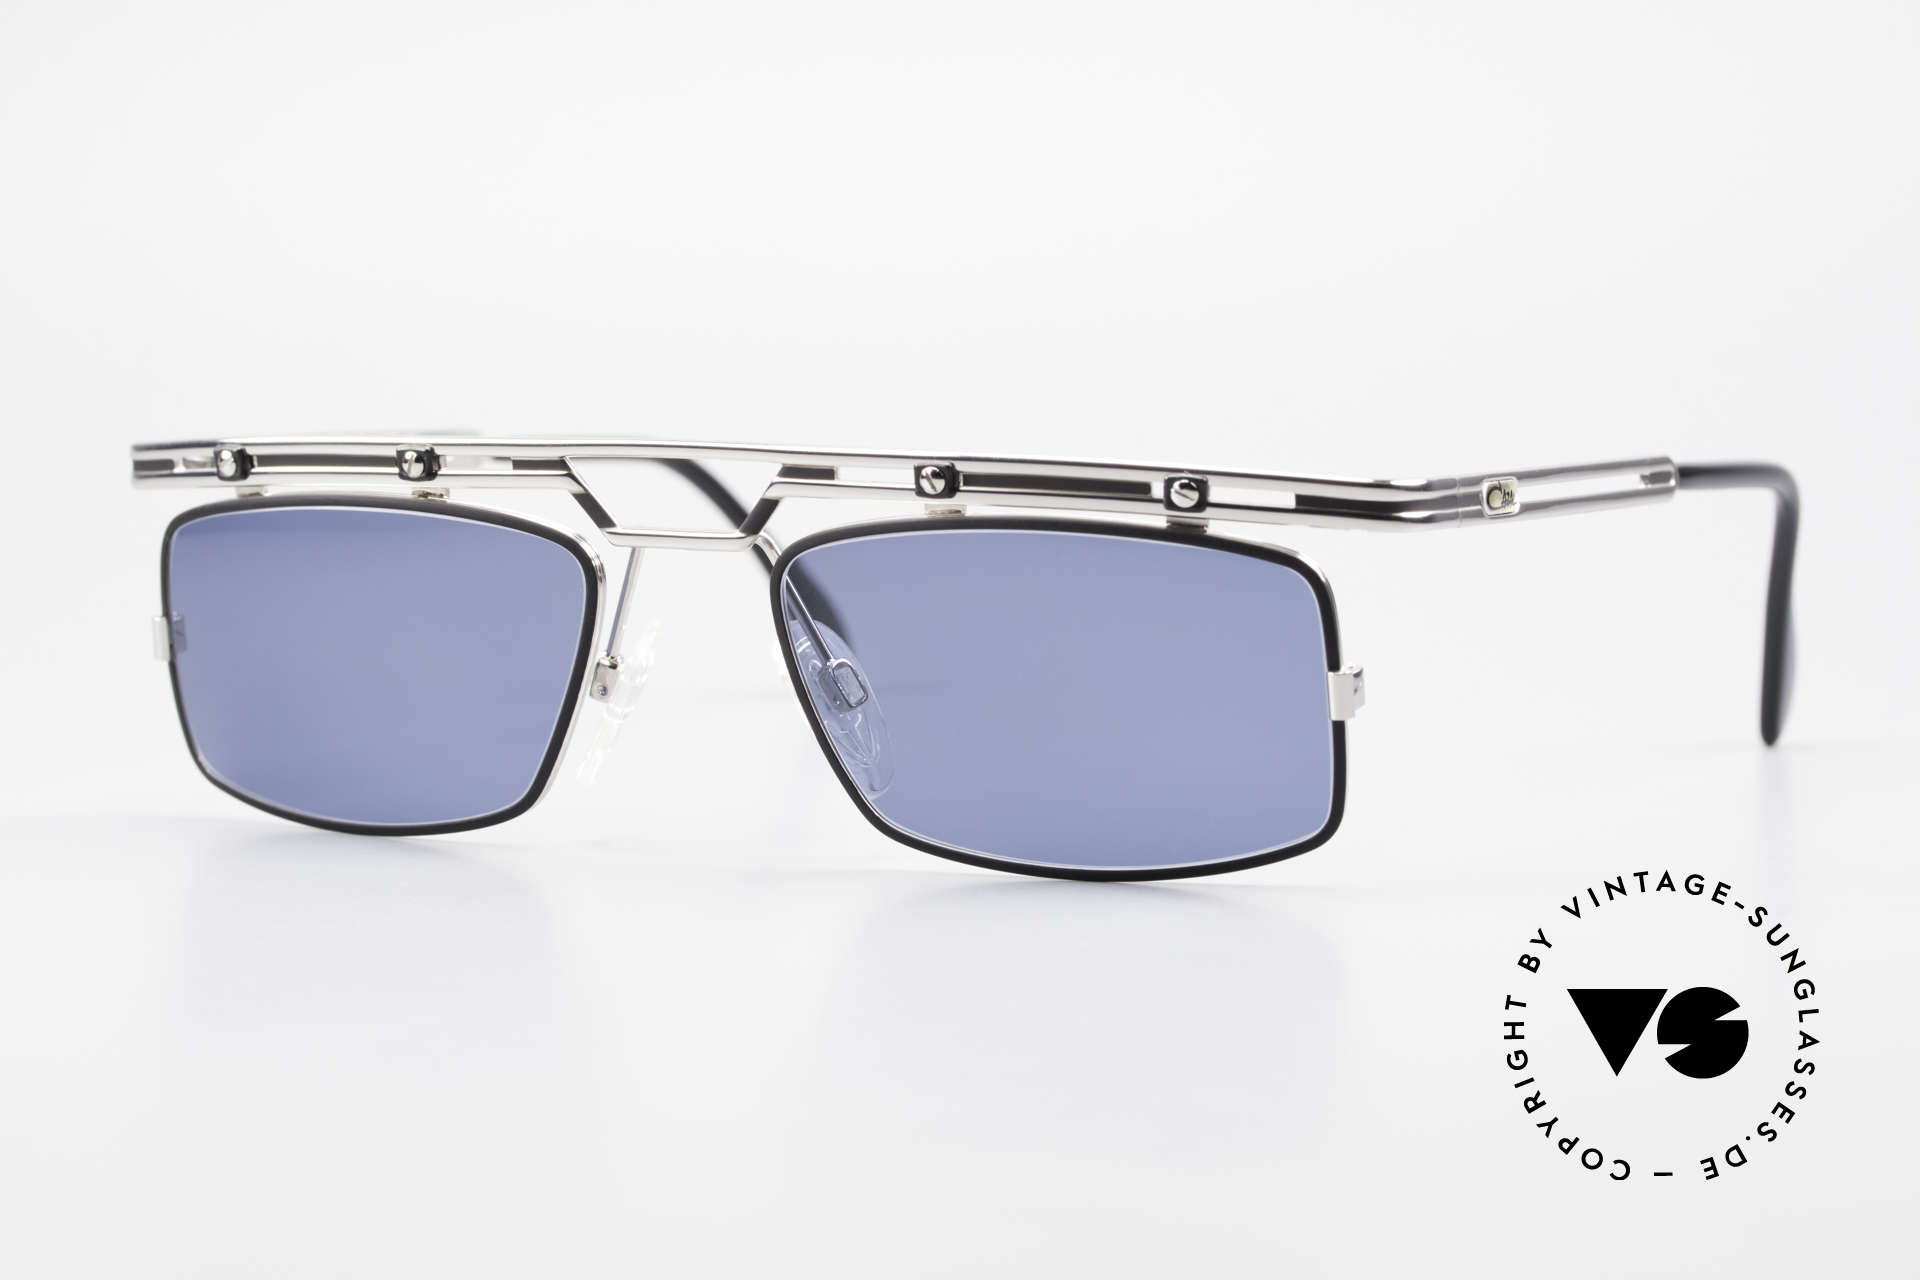 Cazal 975 Square Cazal Sunglasses 90's, striking / square Cazal vintage shades from 1996/97, Made for Men